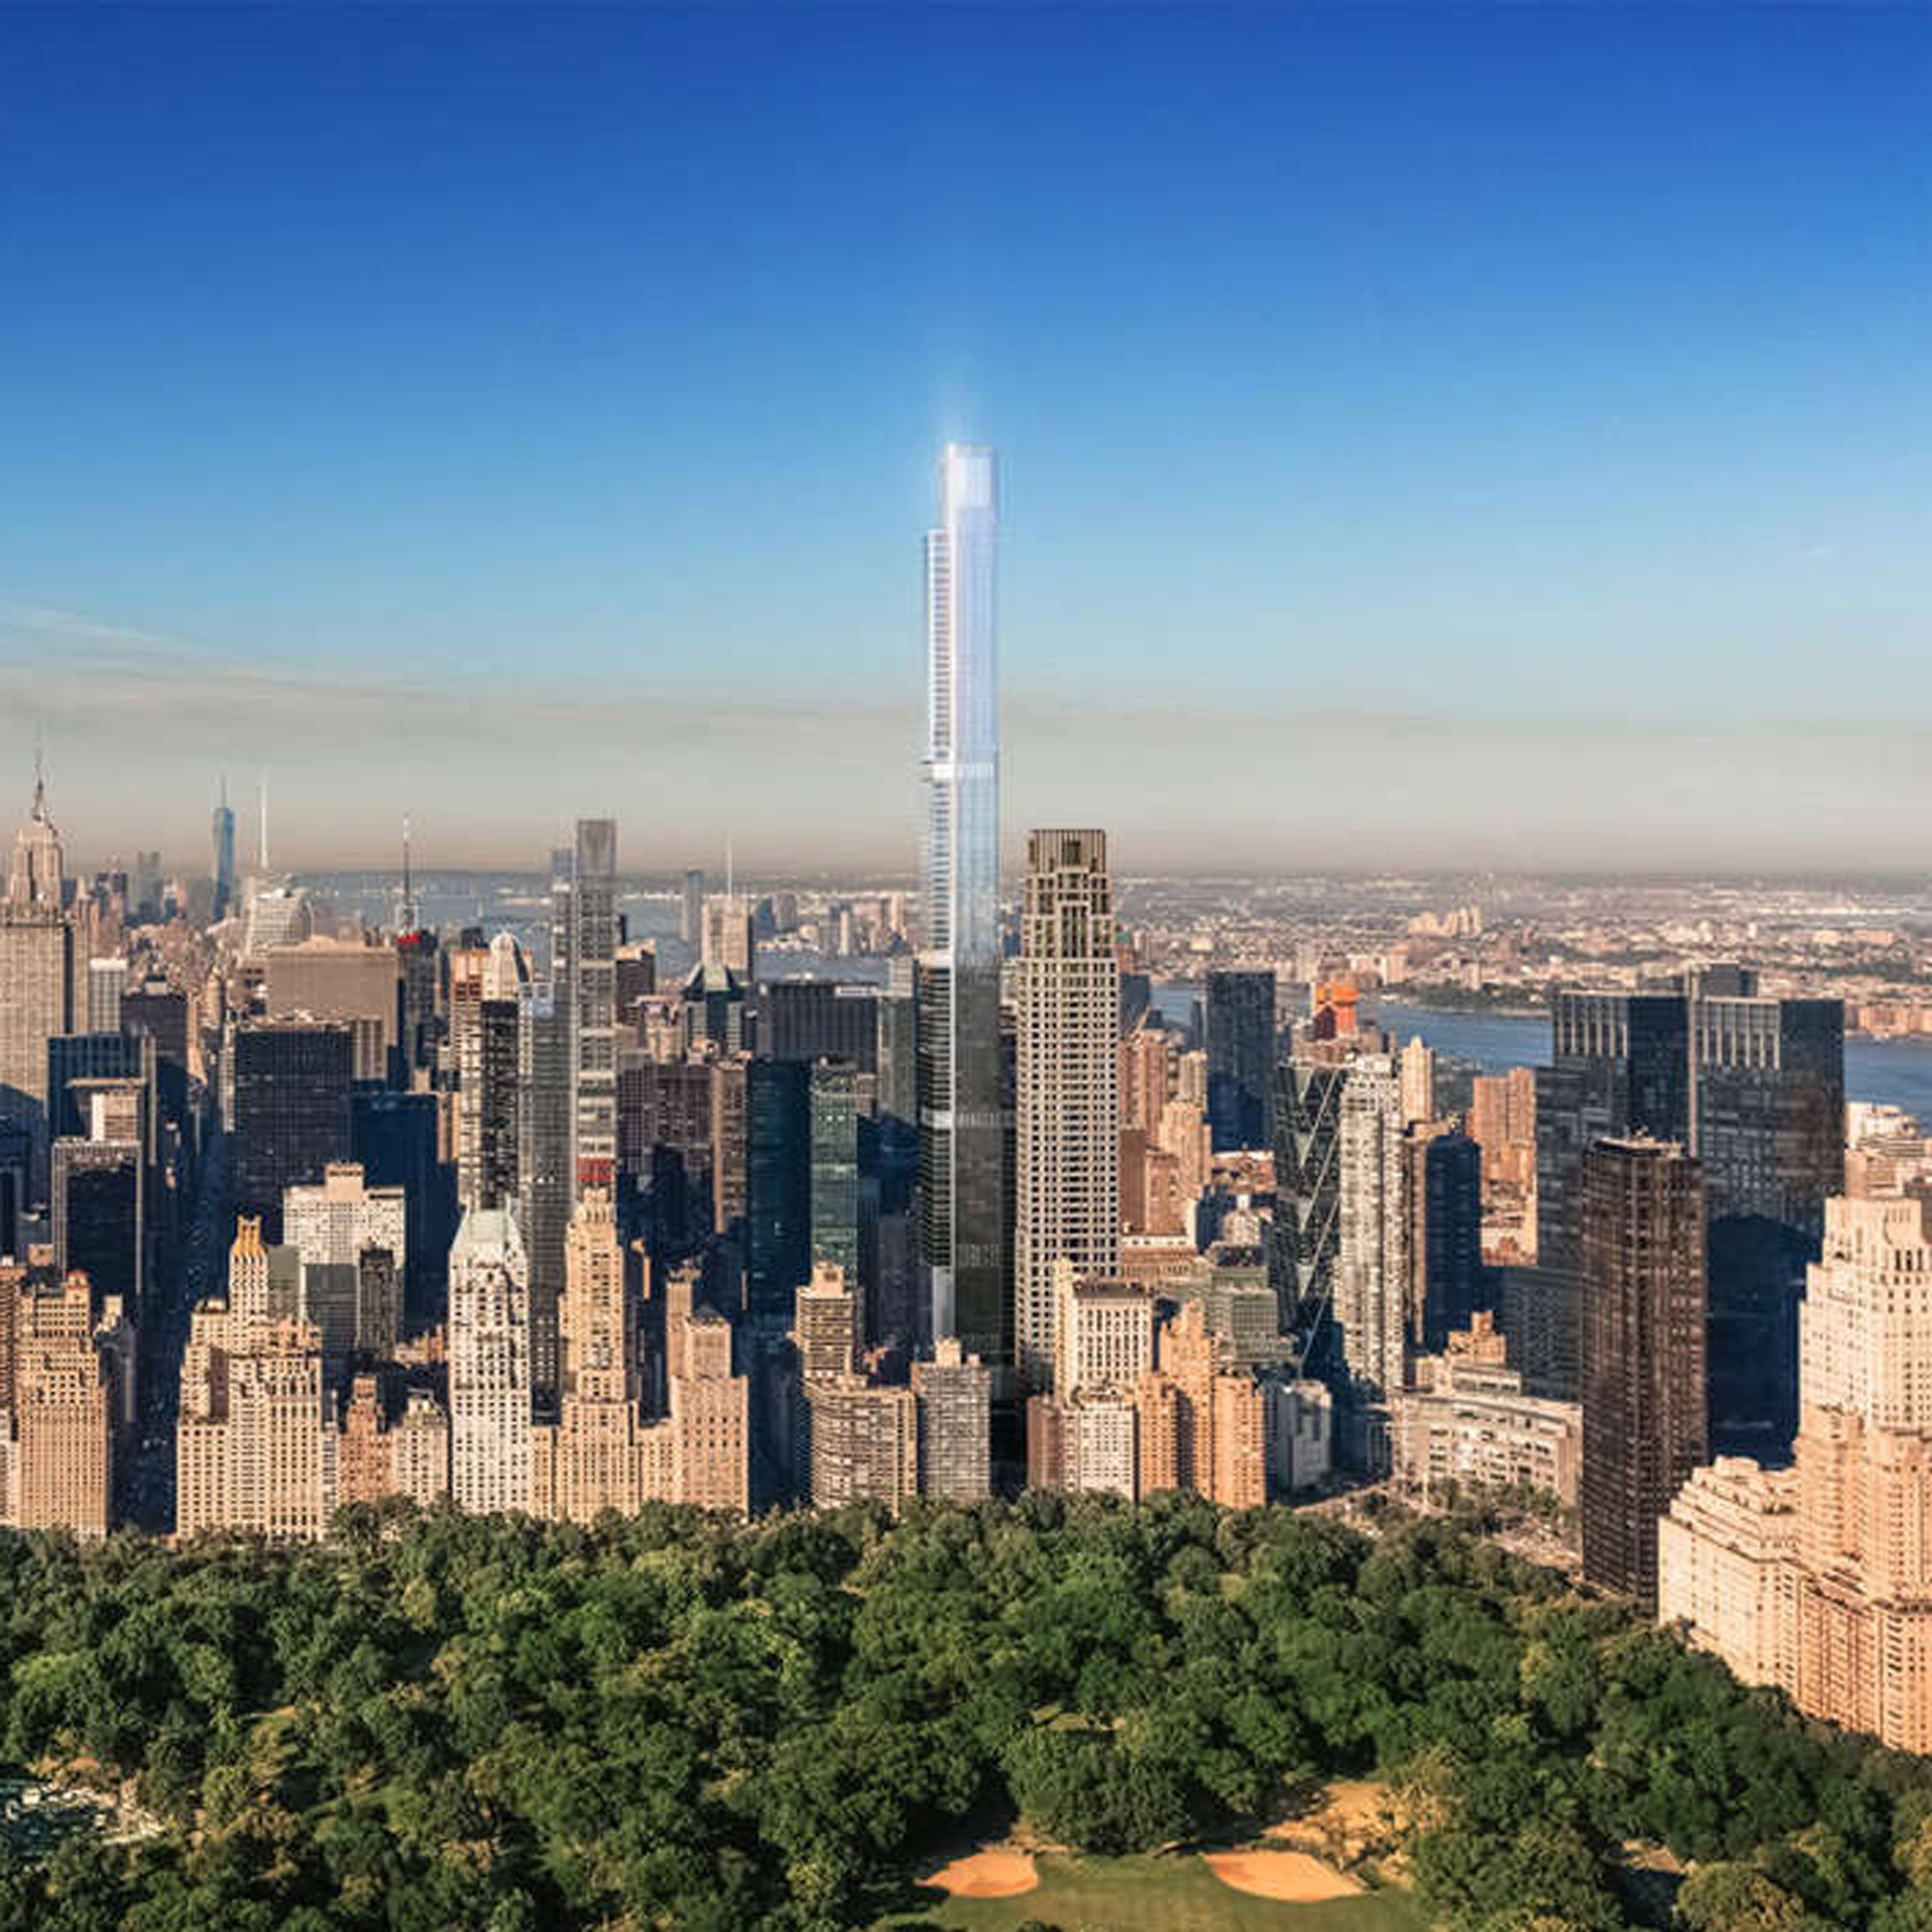 skyscraper architecture and tall buildings dezeen magazine central park tower to become world s tallest residential skyscraper